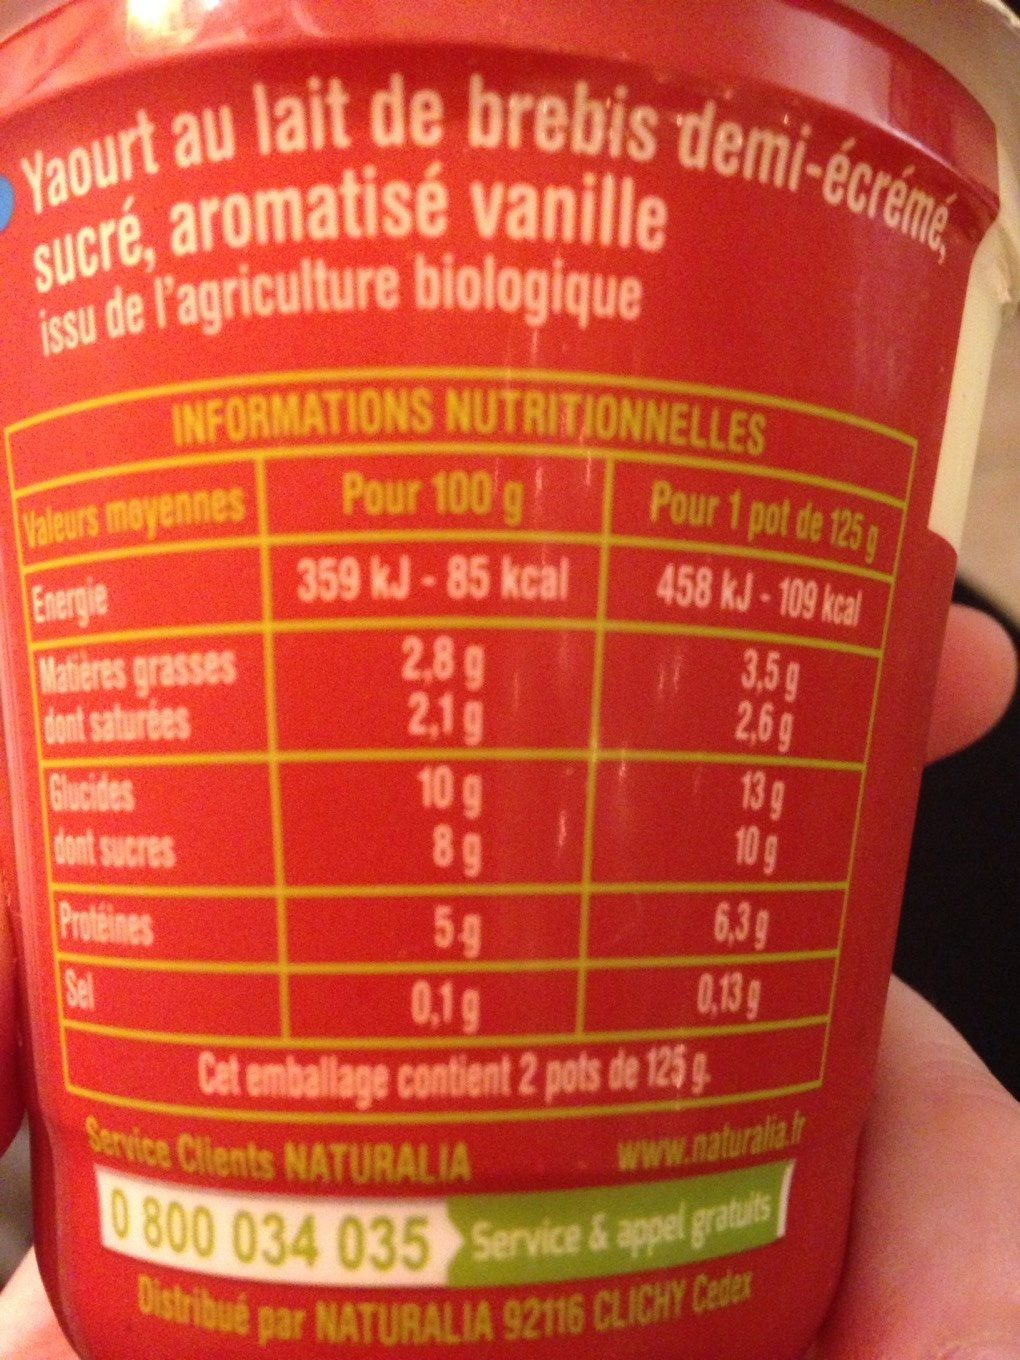 Yaourt de brebis Vanille - Nutrition facts